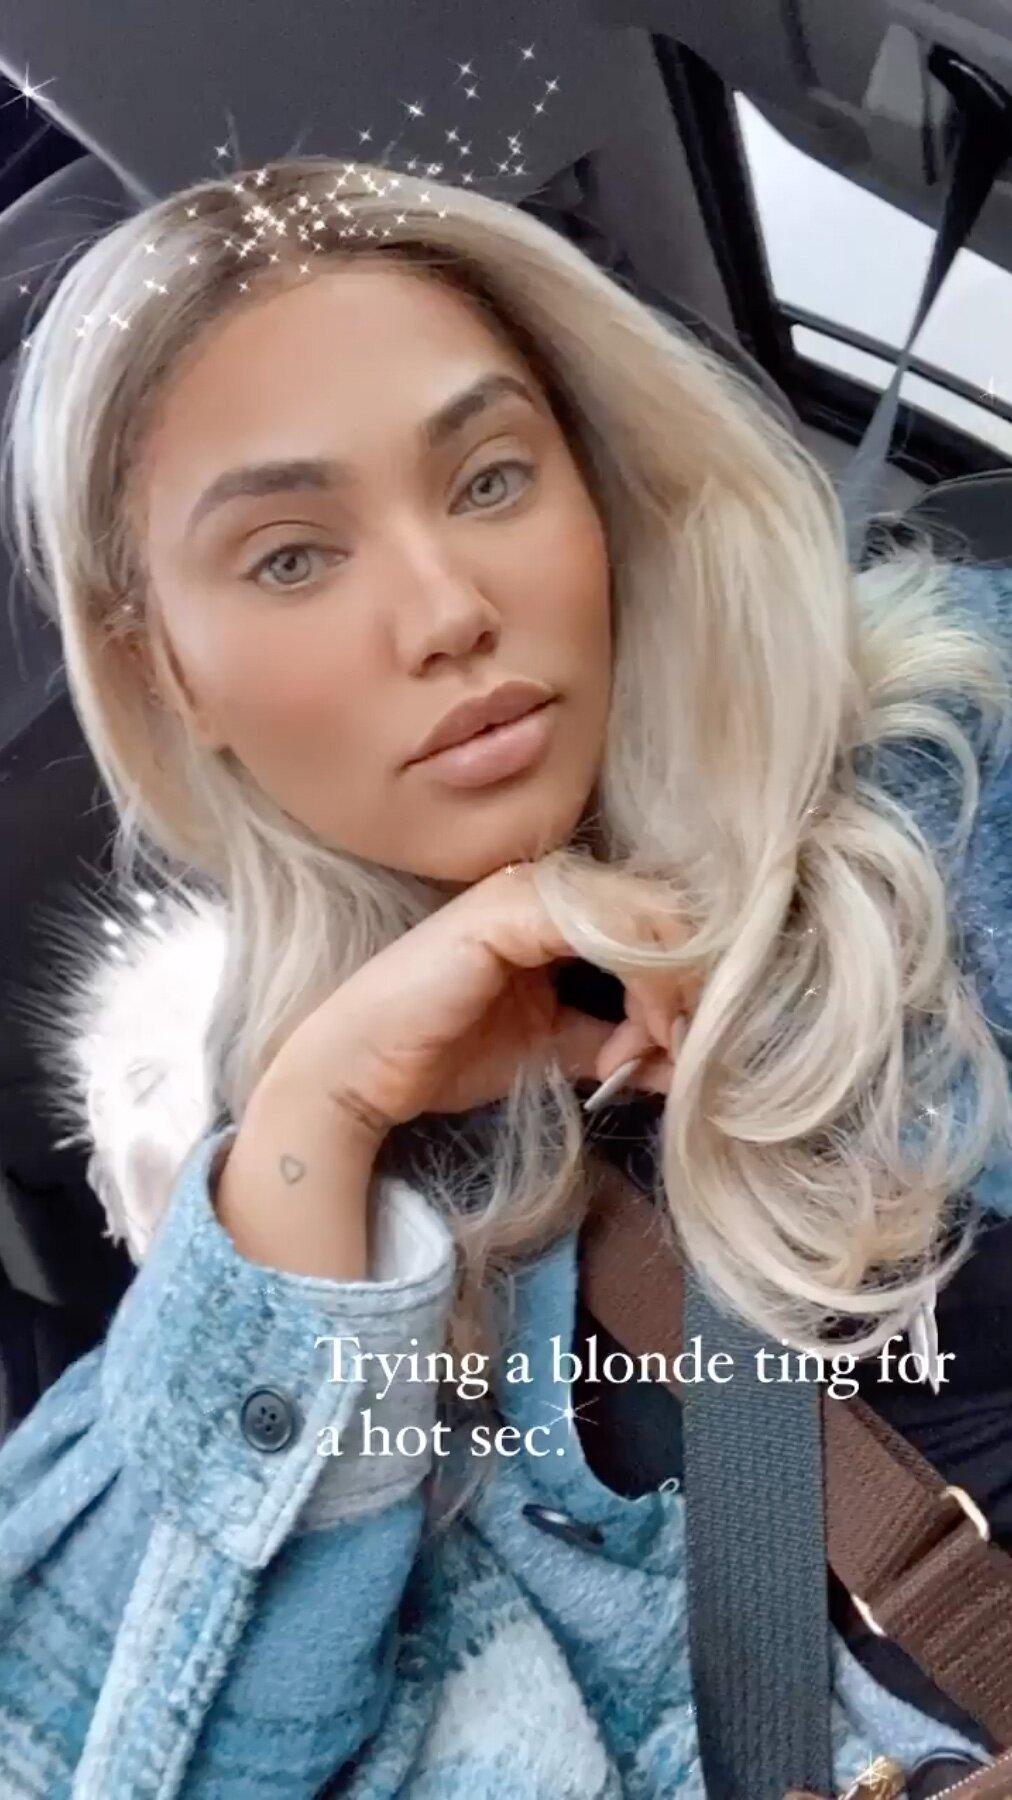 Steph Curry Defends Wife Ayesha S New Blonde Hair Against Instagram Trolls Do You Boo Boo